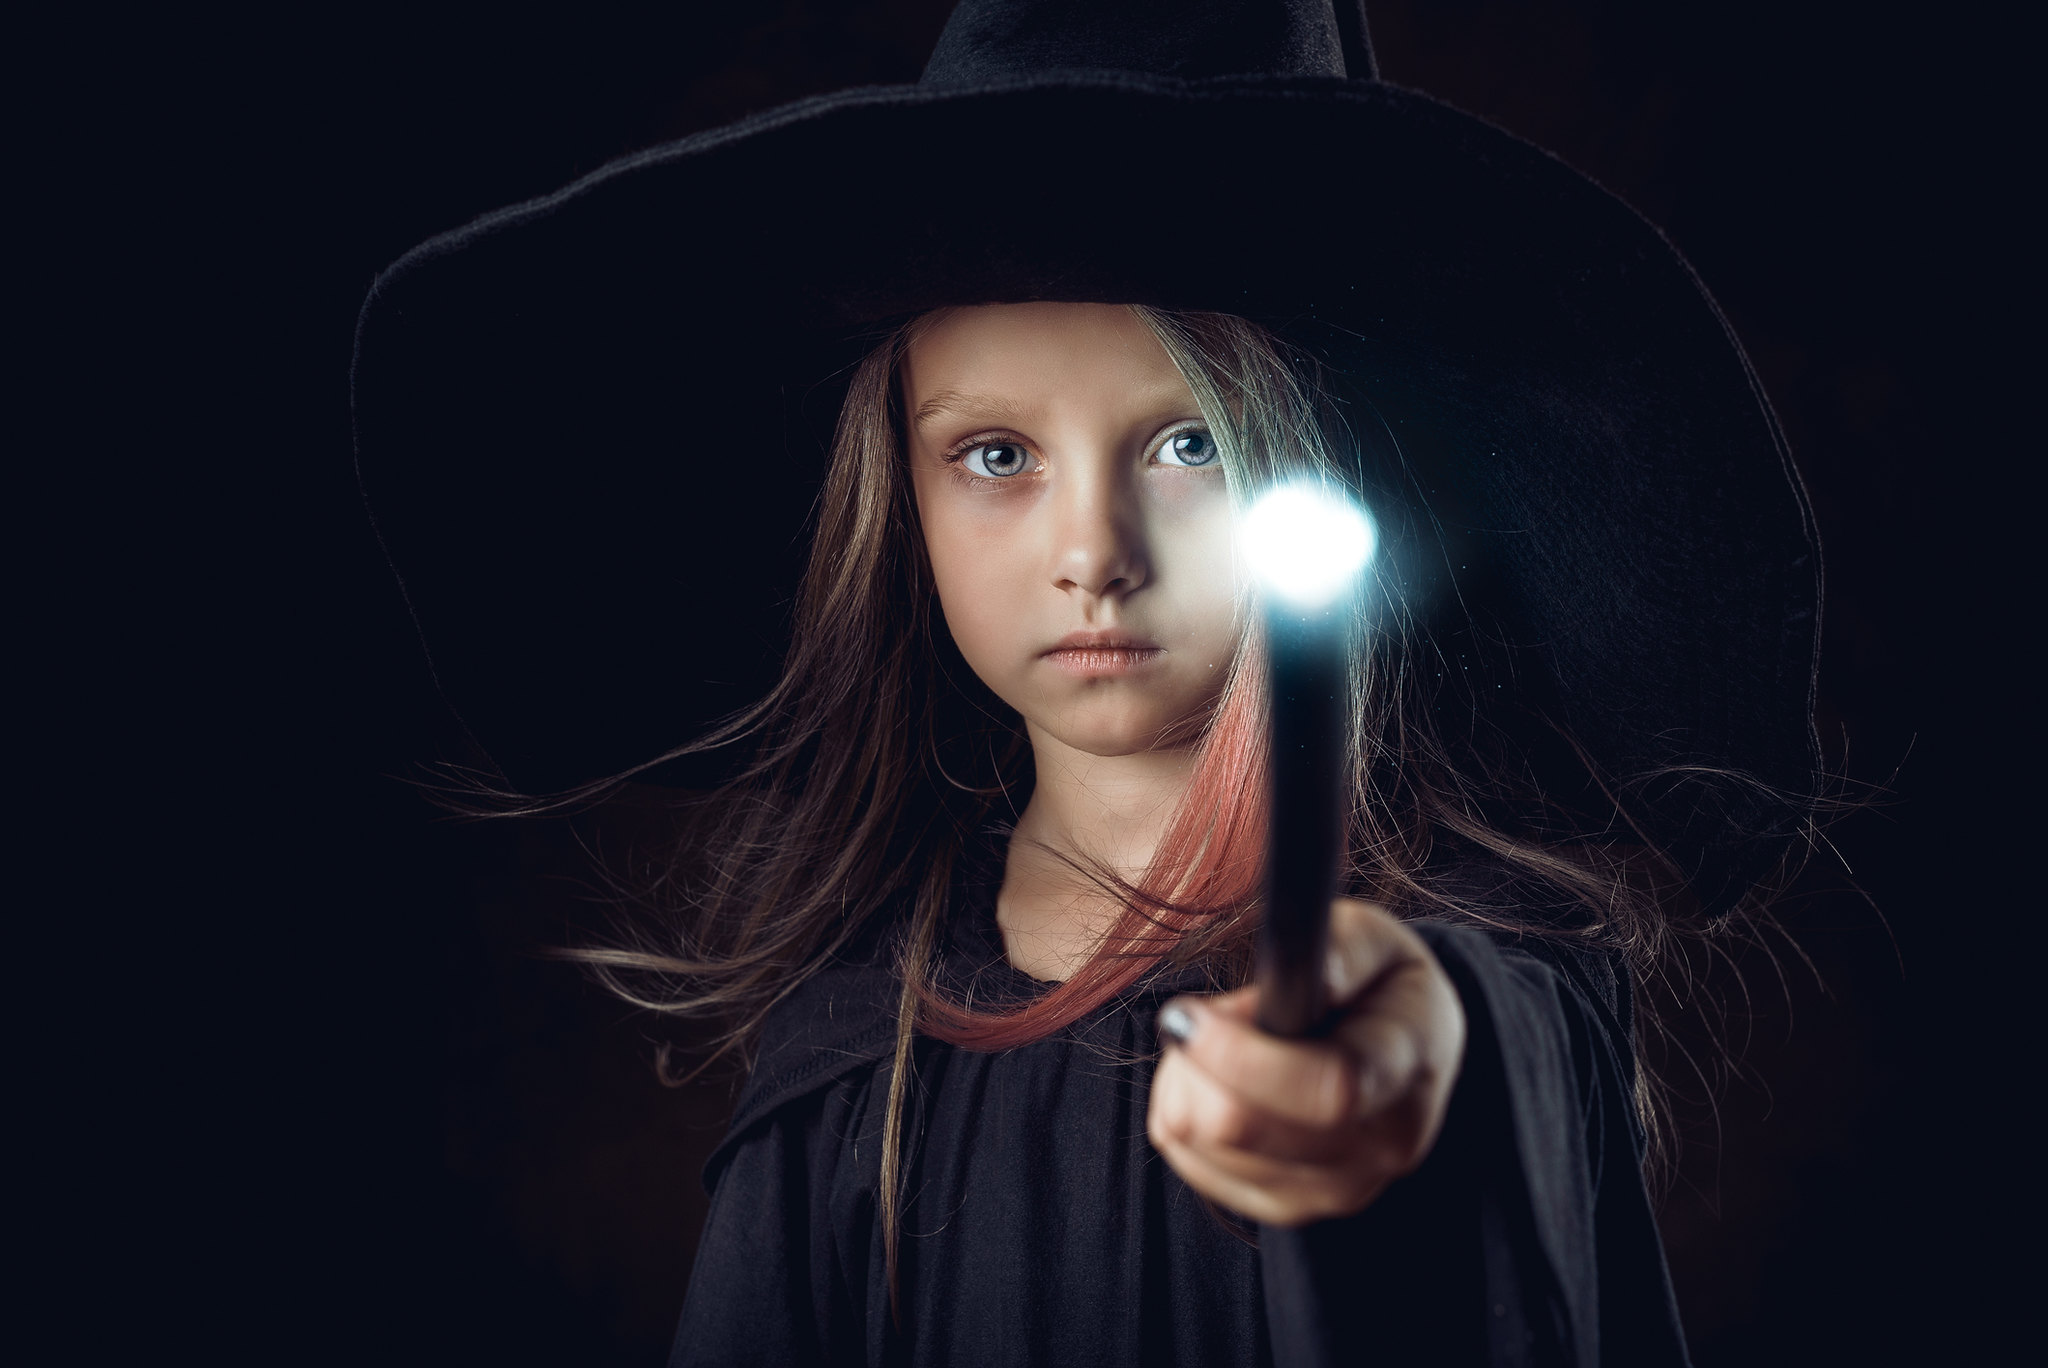 girl dressed as a witch holding a wand